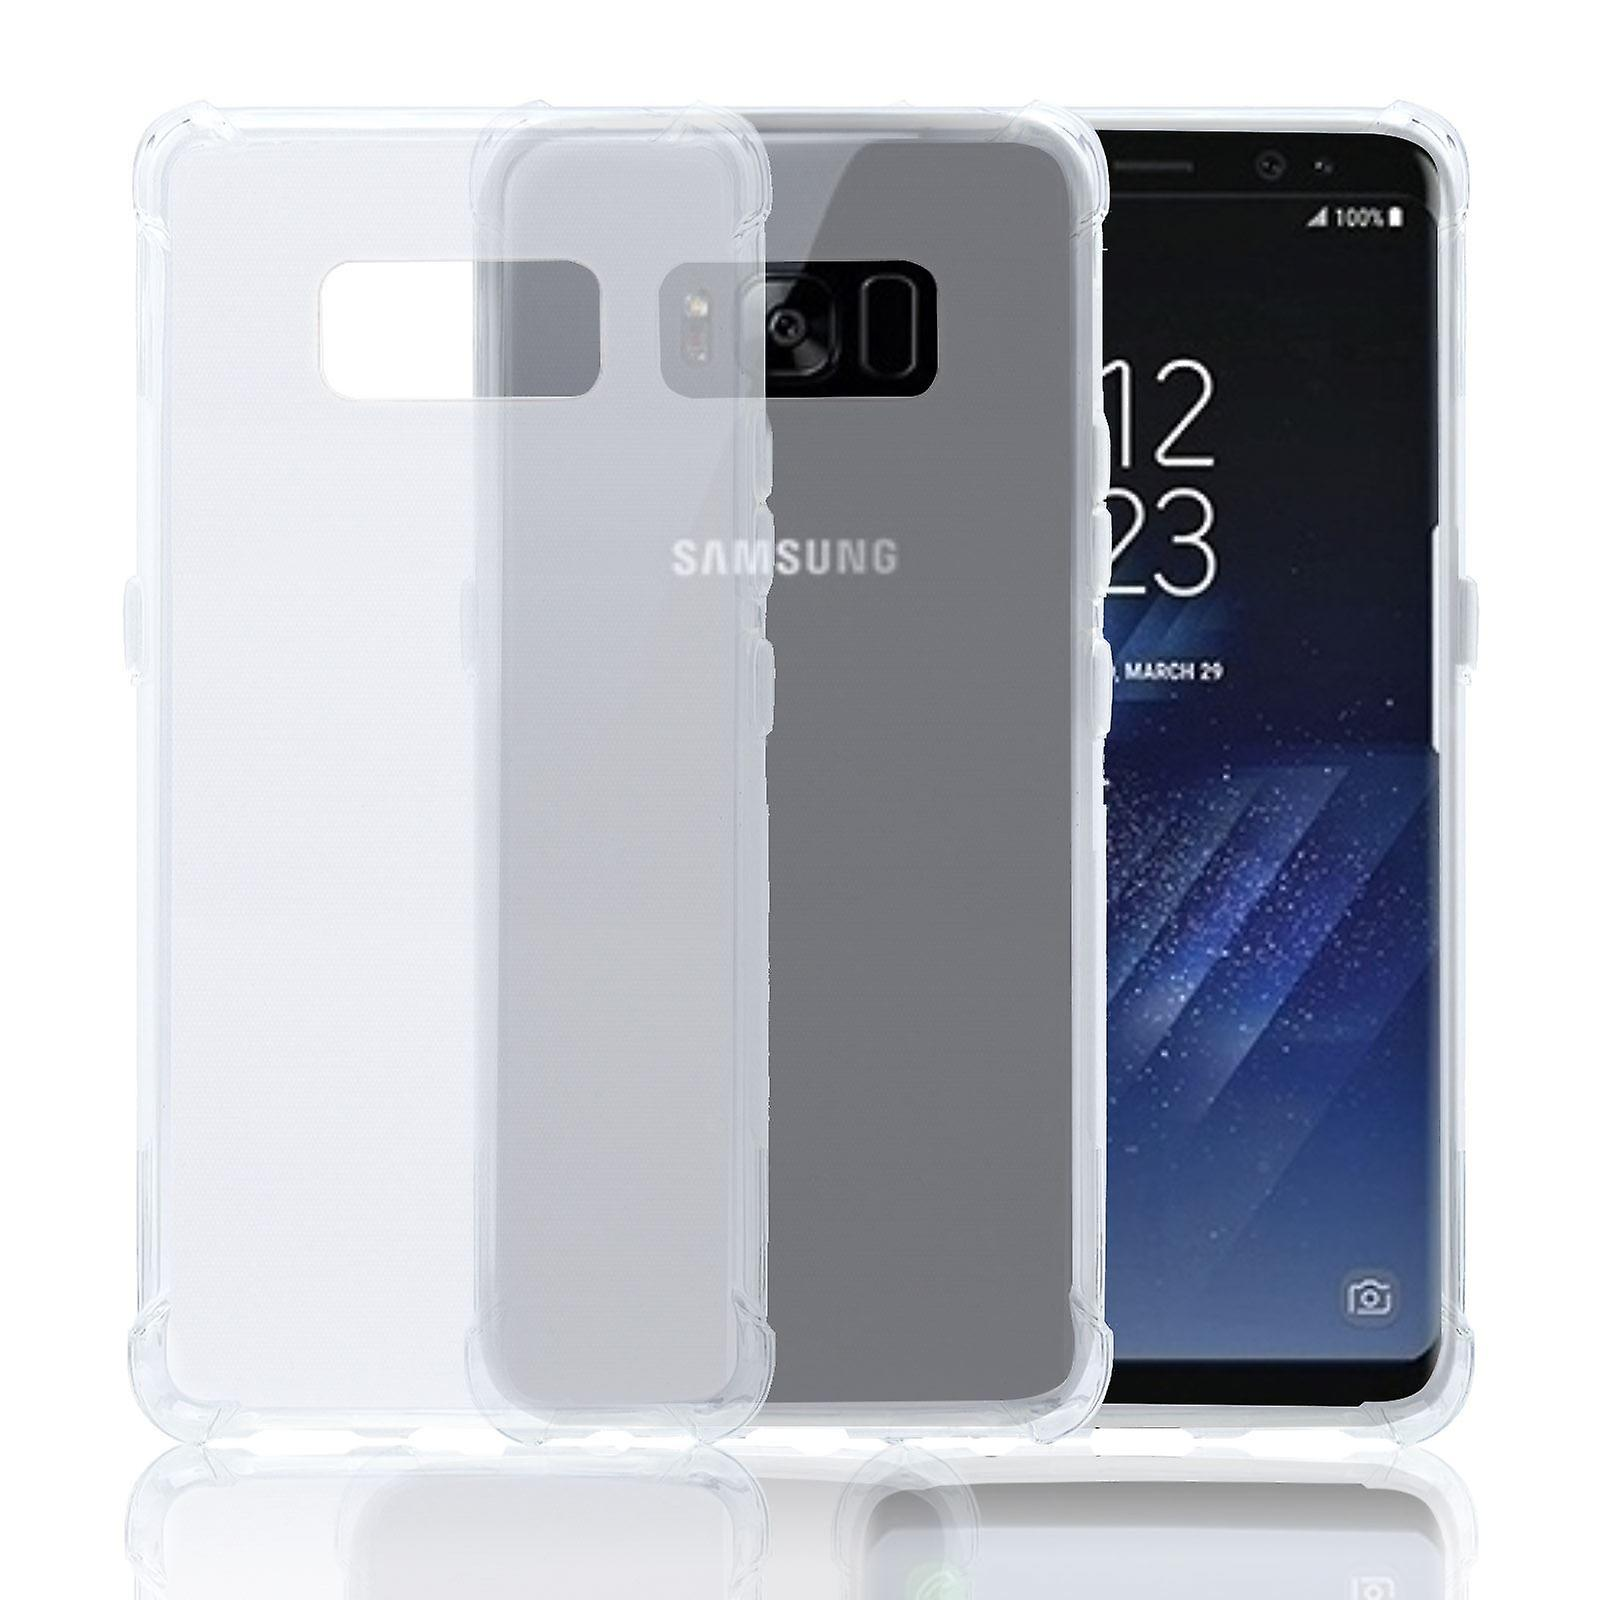 32nd Tough Gel case for Samsung Galaxy S8 - Clear